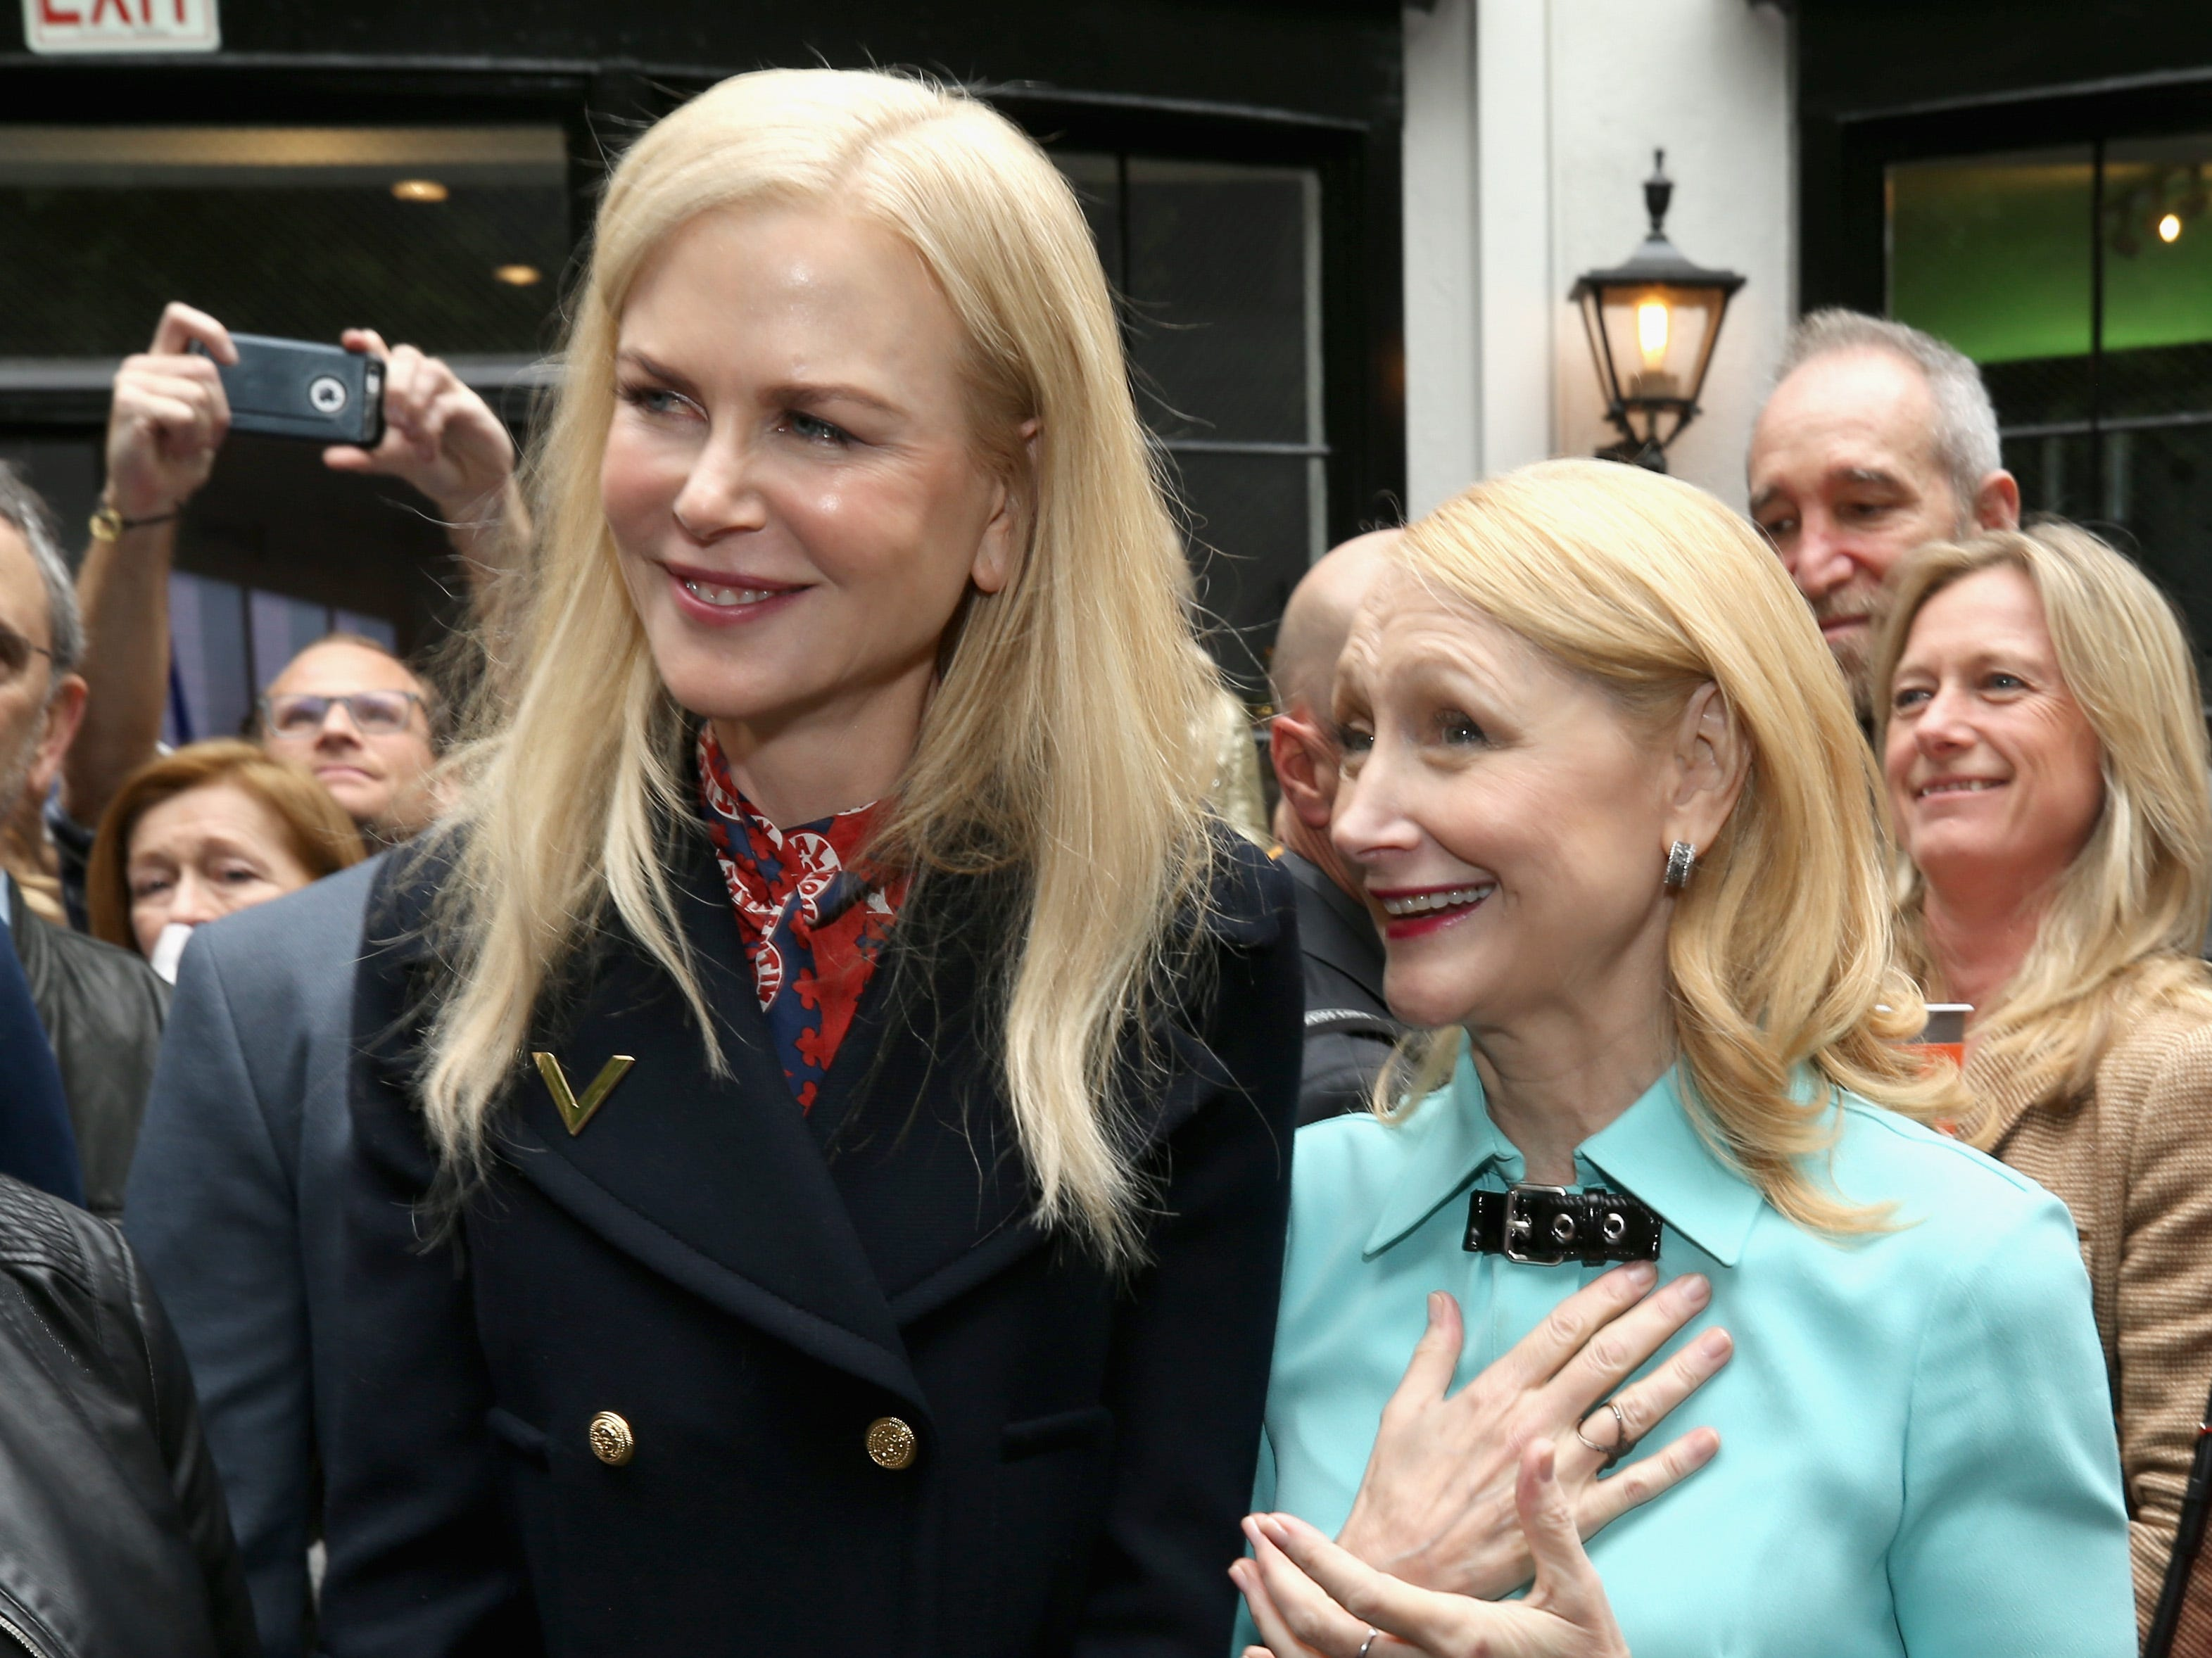 """WEST HOLLYWOOD, CA - JANUARY 05:  Nicole Kidman (L) and Patricia Clarkson attend The 6th Annual """"Gold Meets Golden"""" Brunch, hosted by Nicole Kidman and Nadia Comaneci and presented by Coca-Cola at The House on Sunset on January 5, 2019 in West Hollywood, California.  (Photo by Phillip Faraone/Getty Images for Gold Meets Golden) ORG XMIT: 775276799 ORIG FILE ID: 1077928780"""